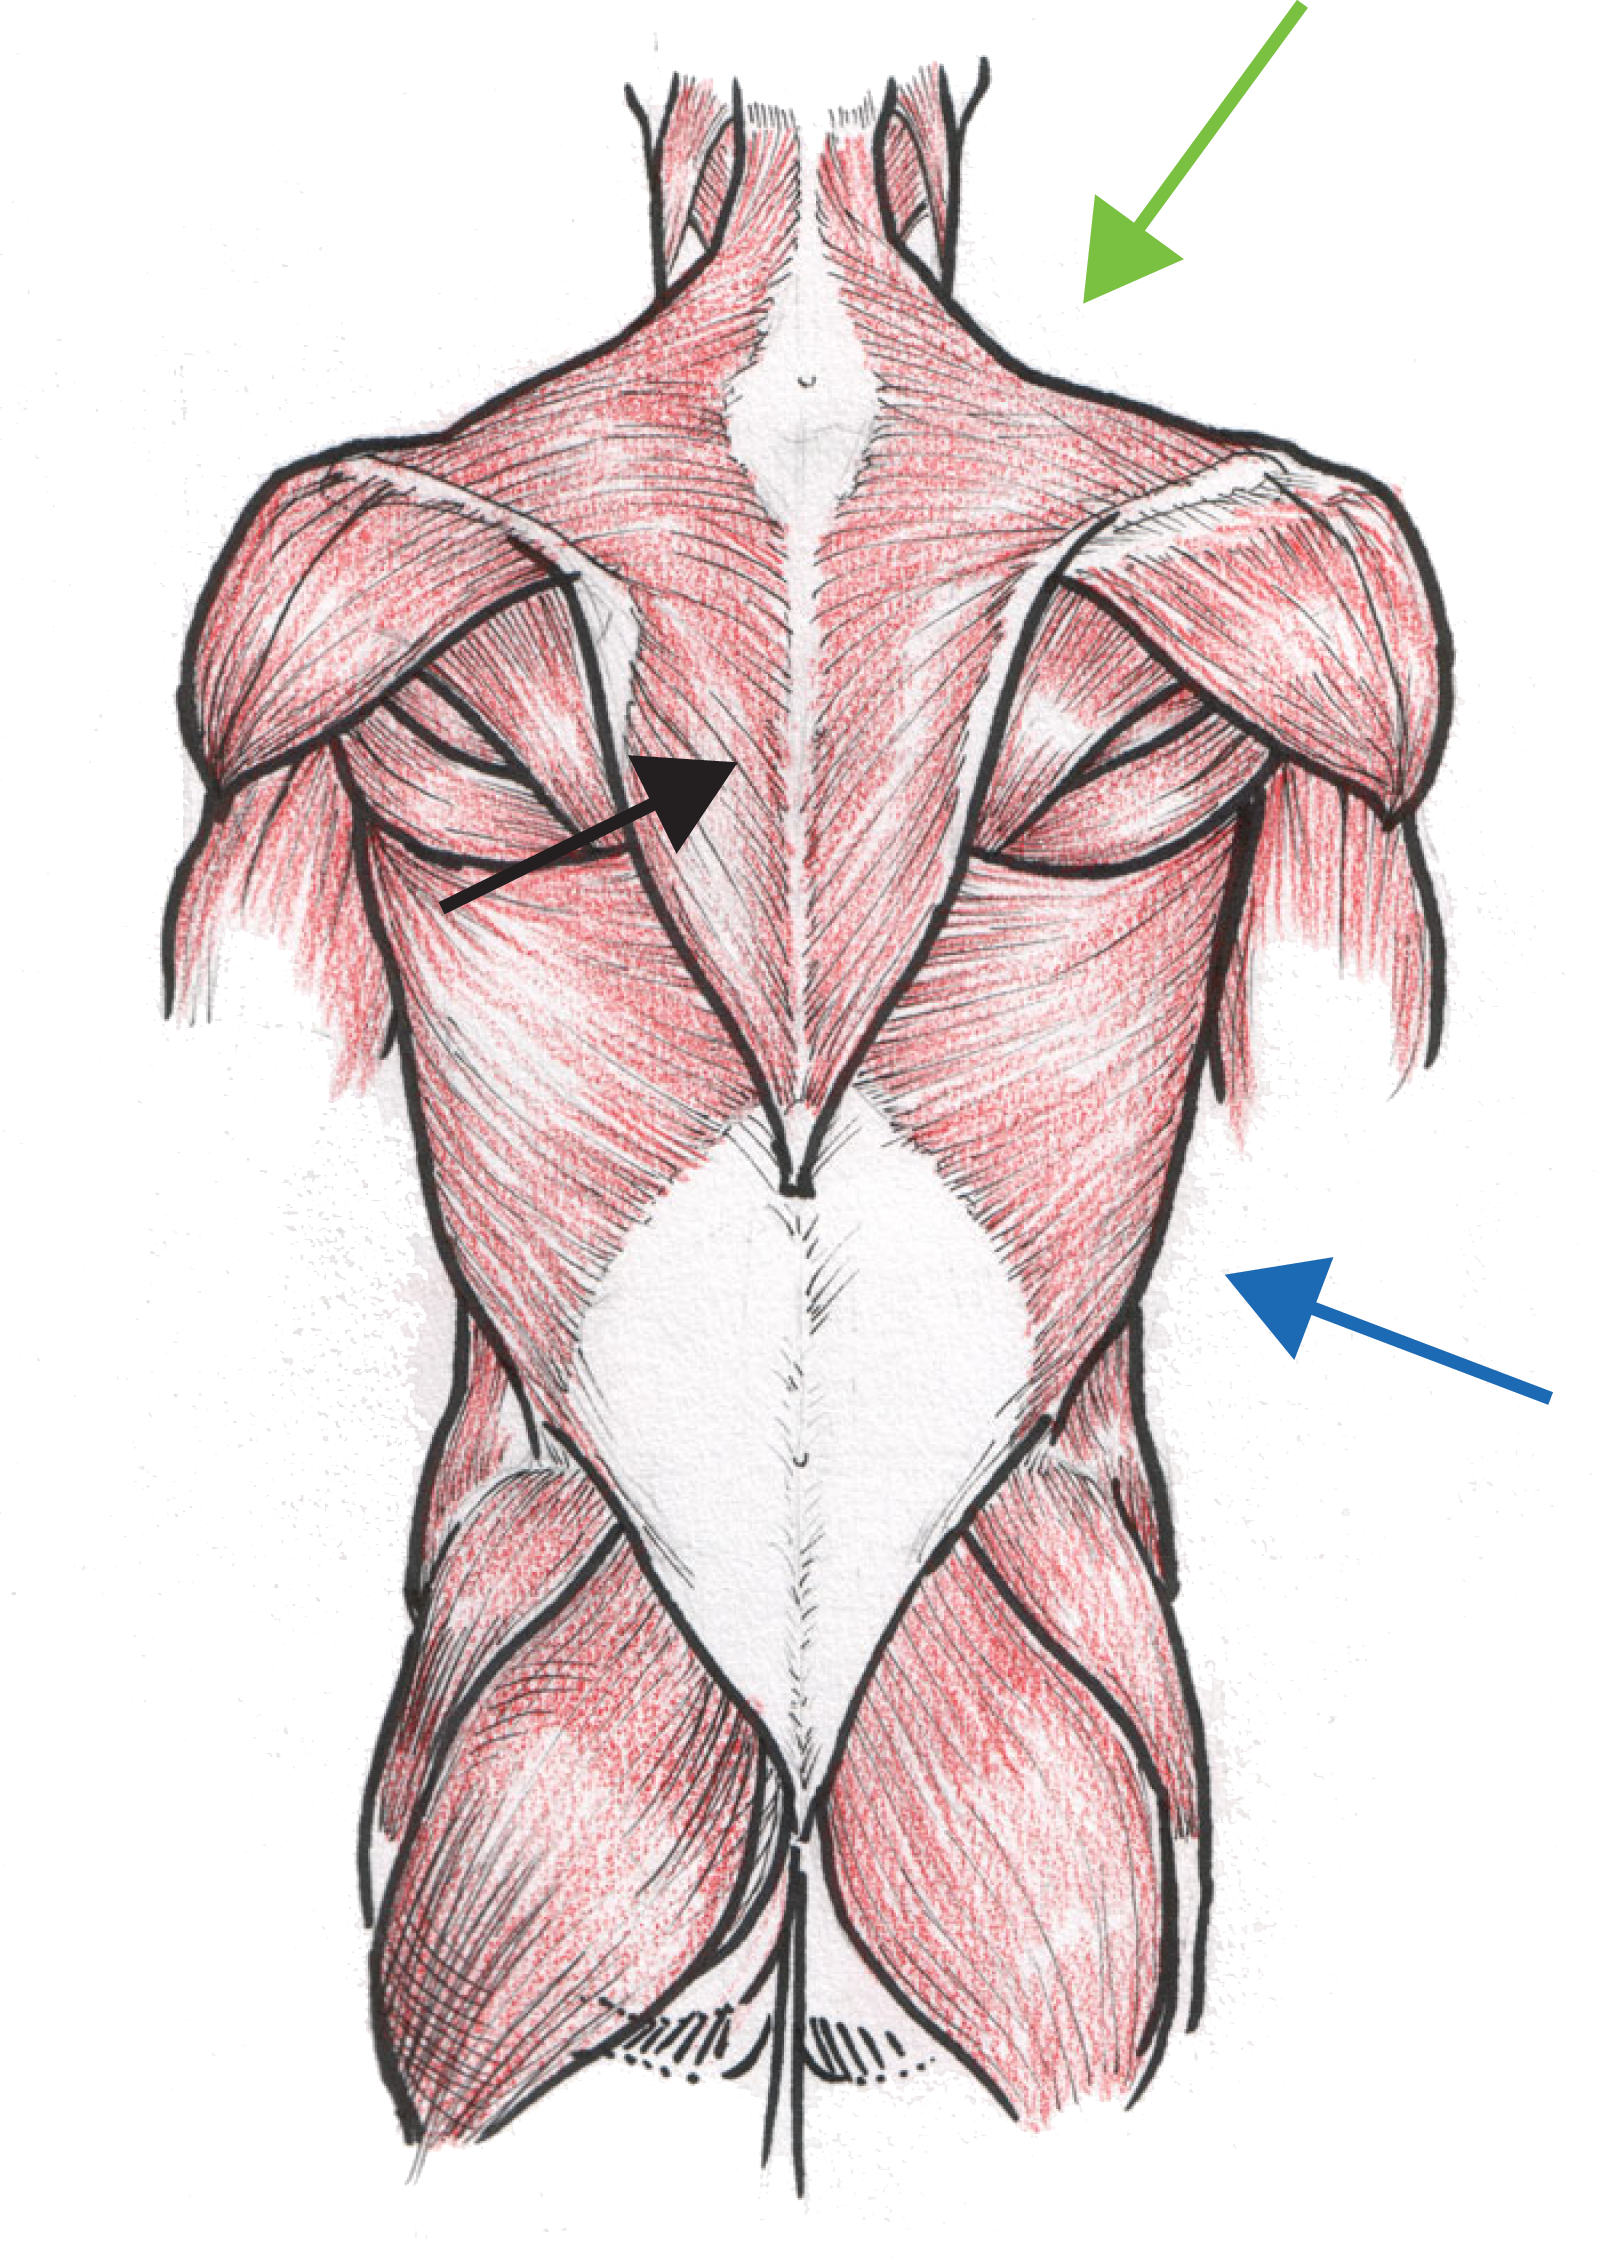 Anatomical illustrations of muscle groups can be complicated ...